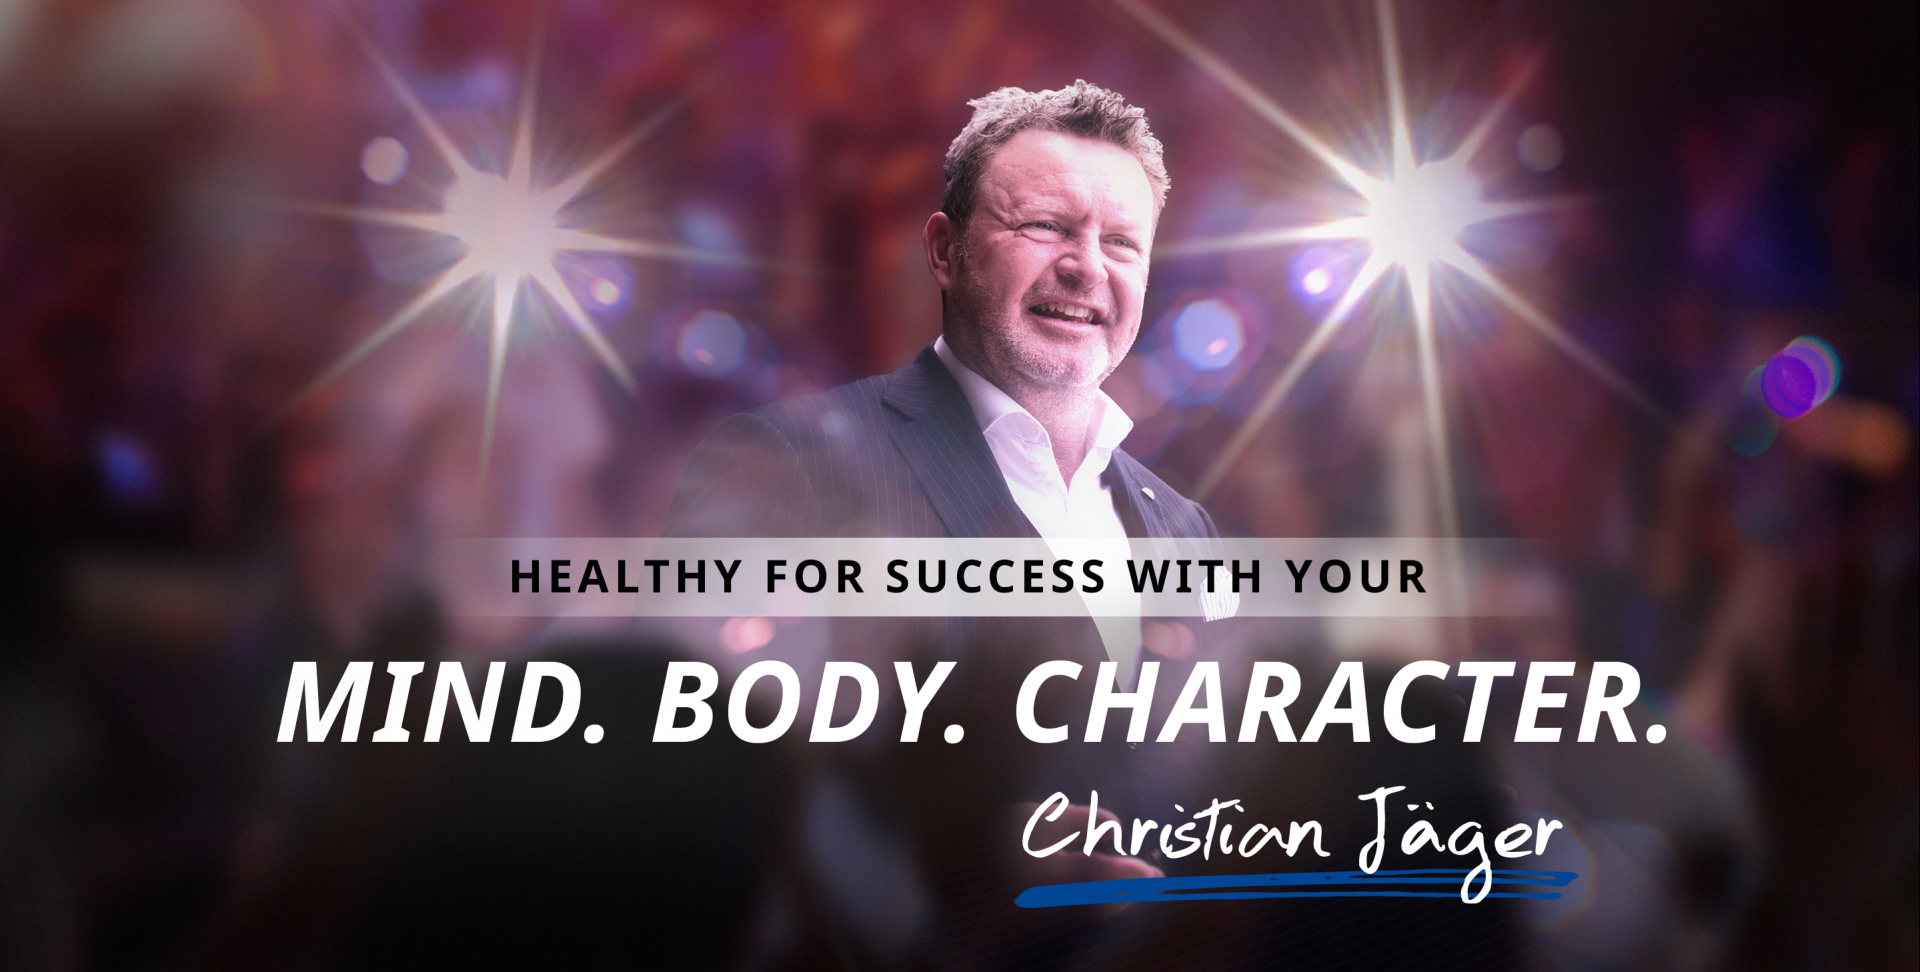 Mind. Body. Character.